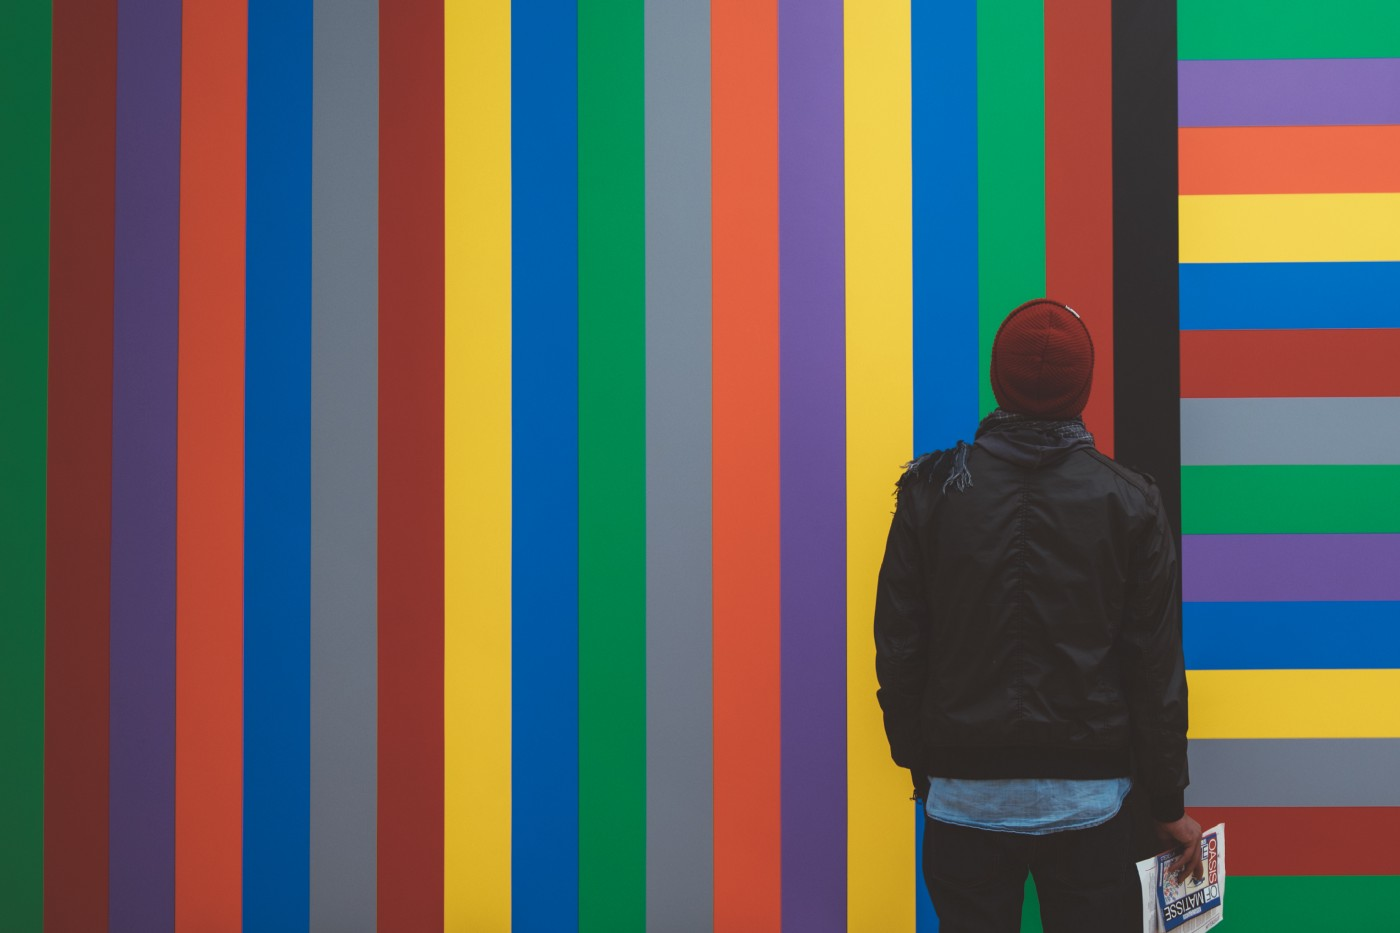 A man holding a newspaper stares at a wall painted with brightly colored vertical stripes